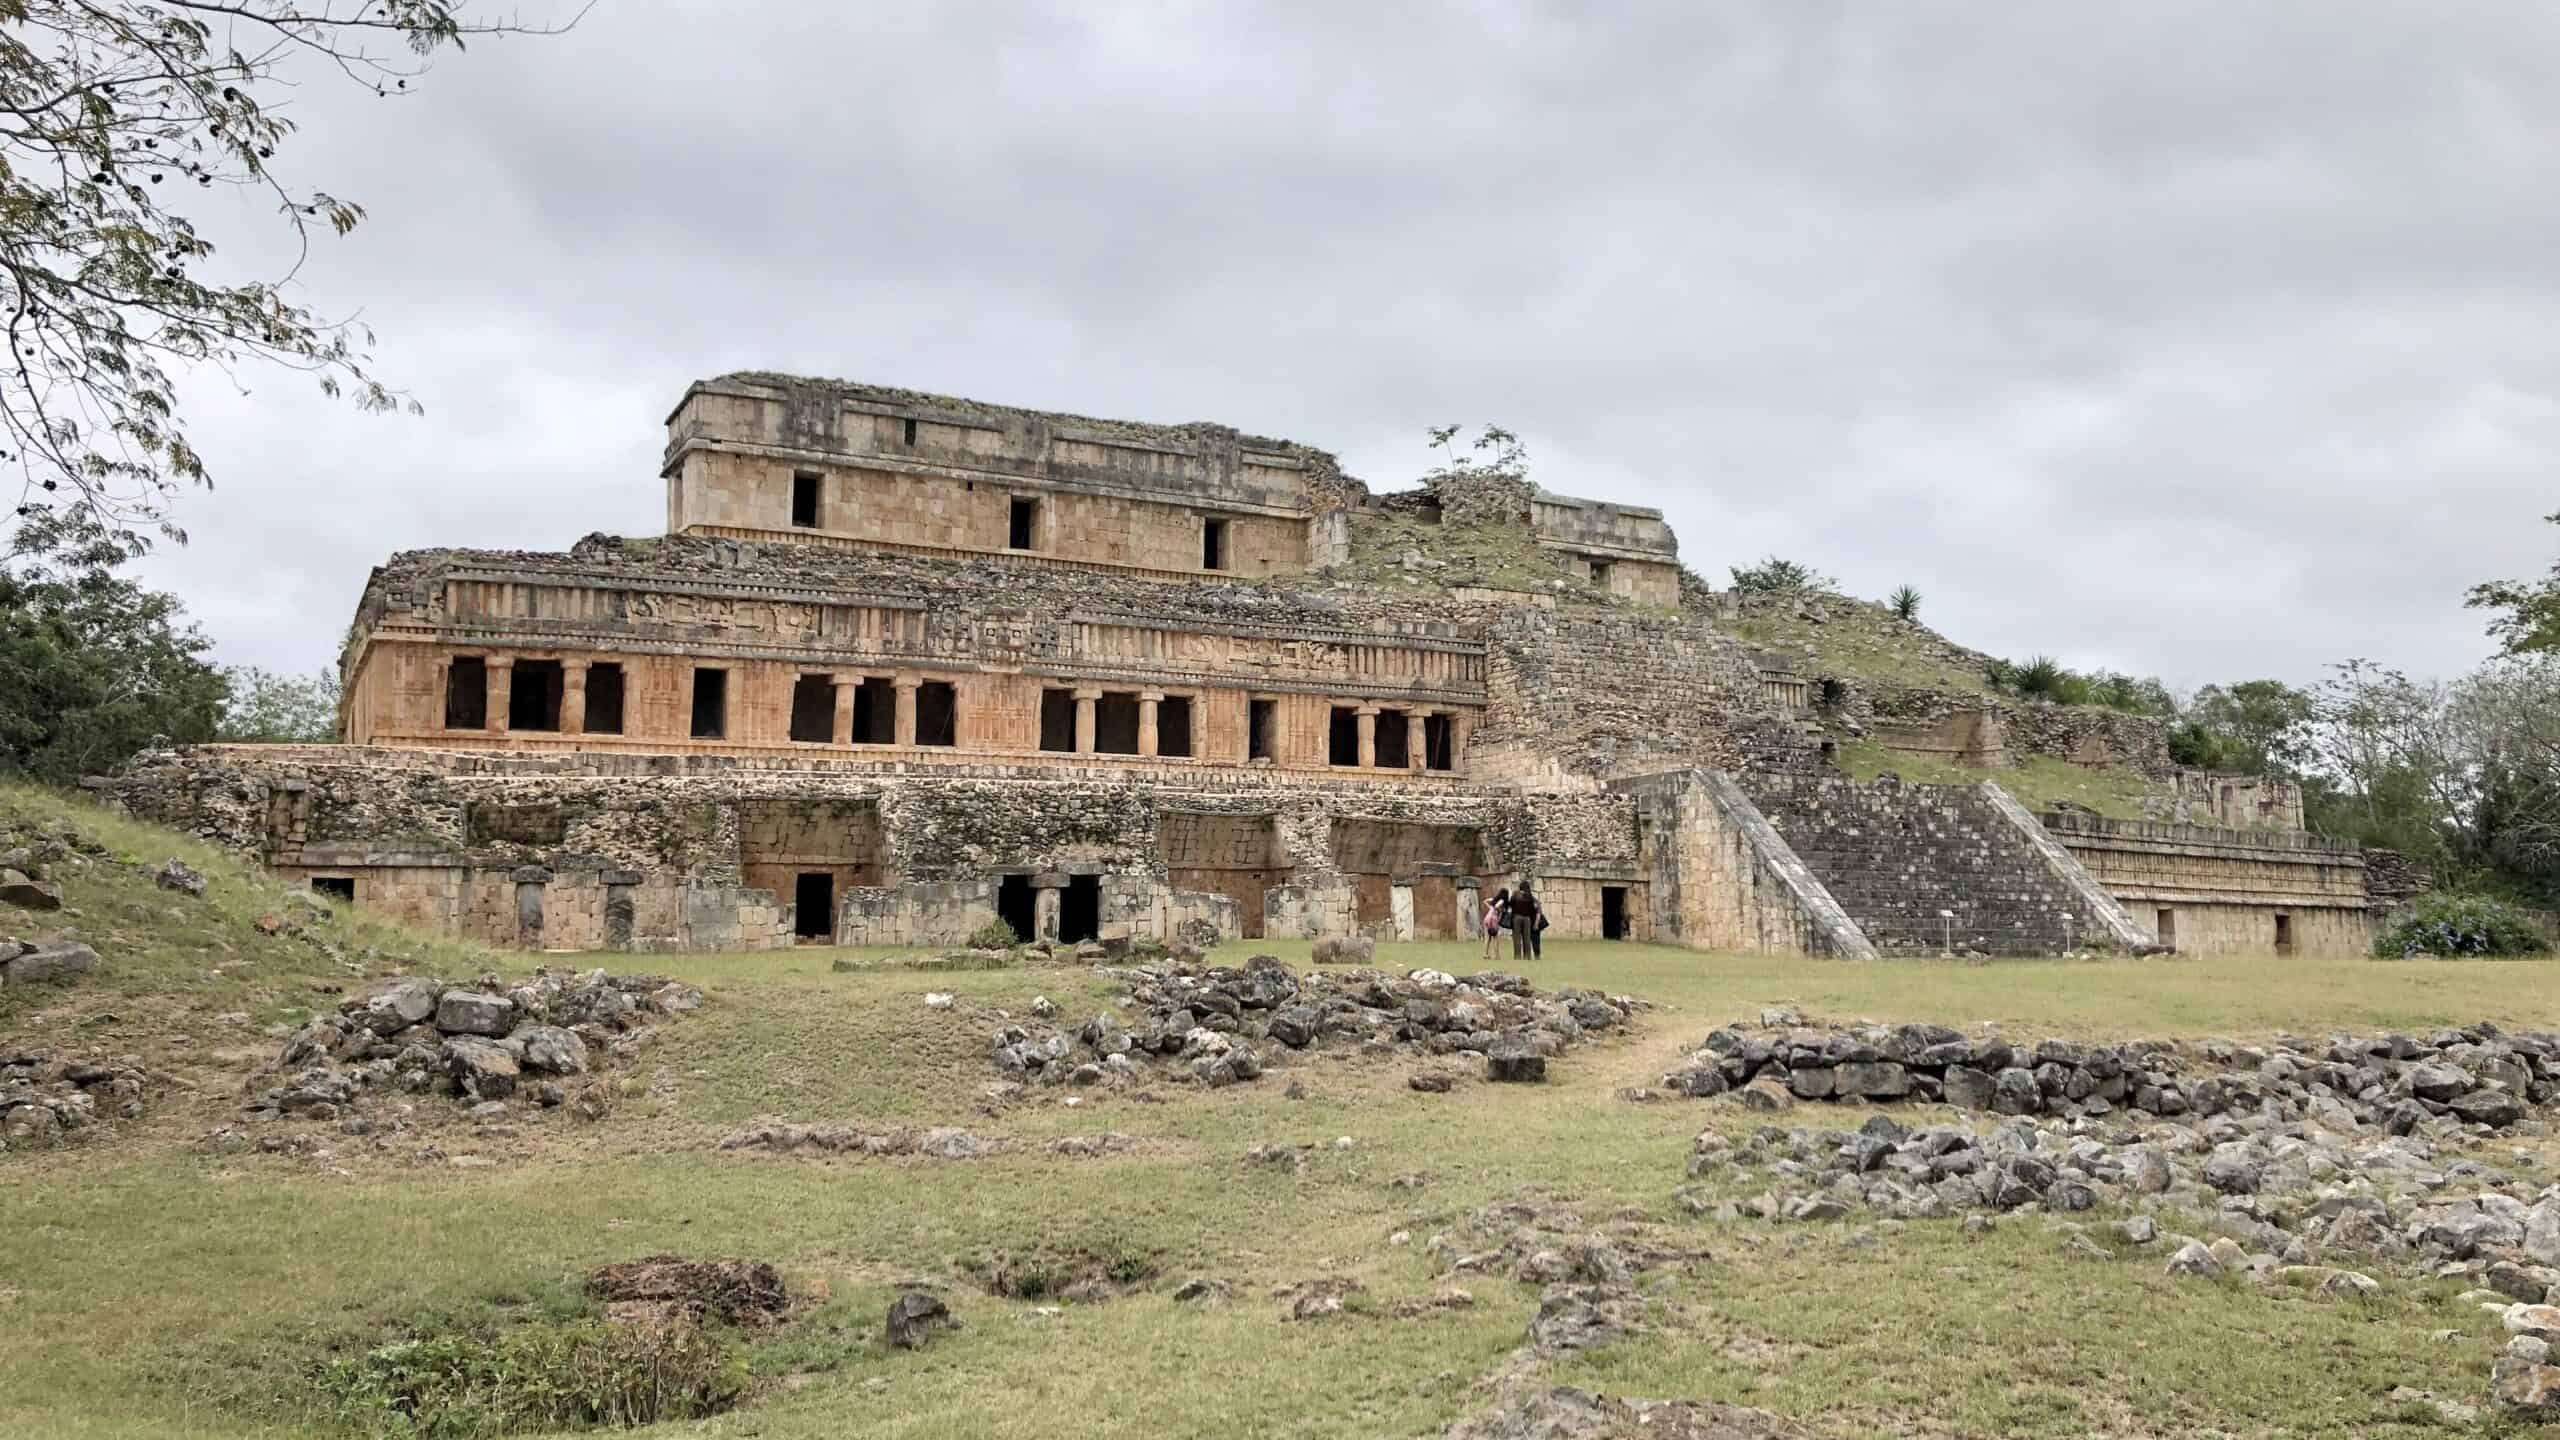 Remains of the Palace of Sayil